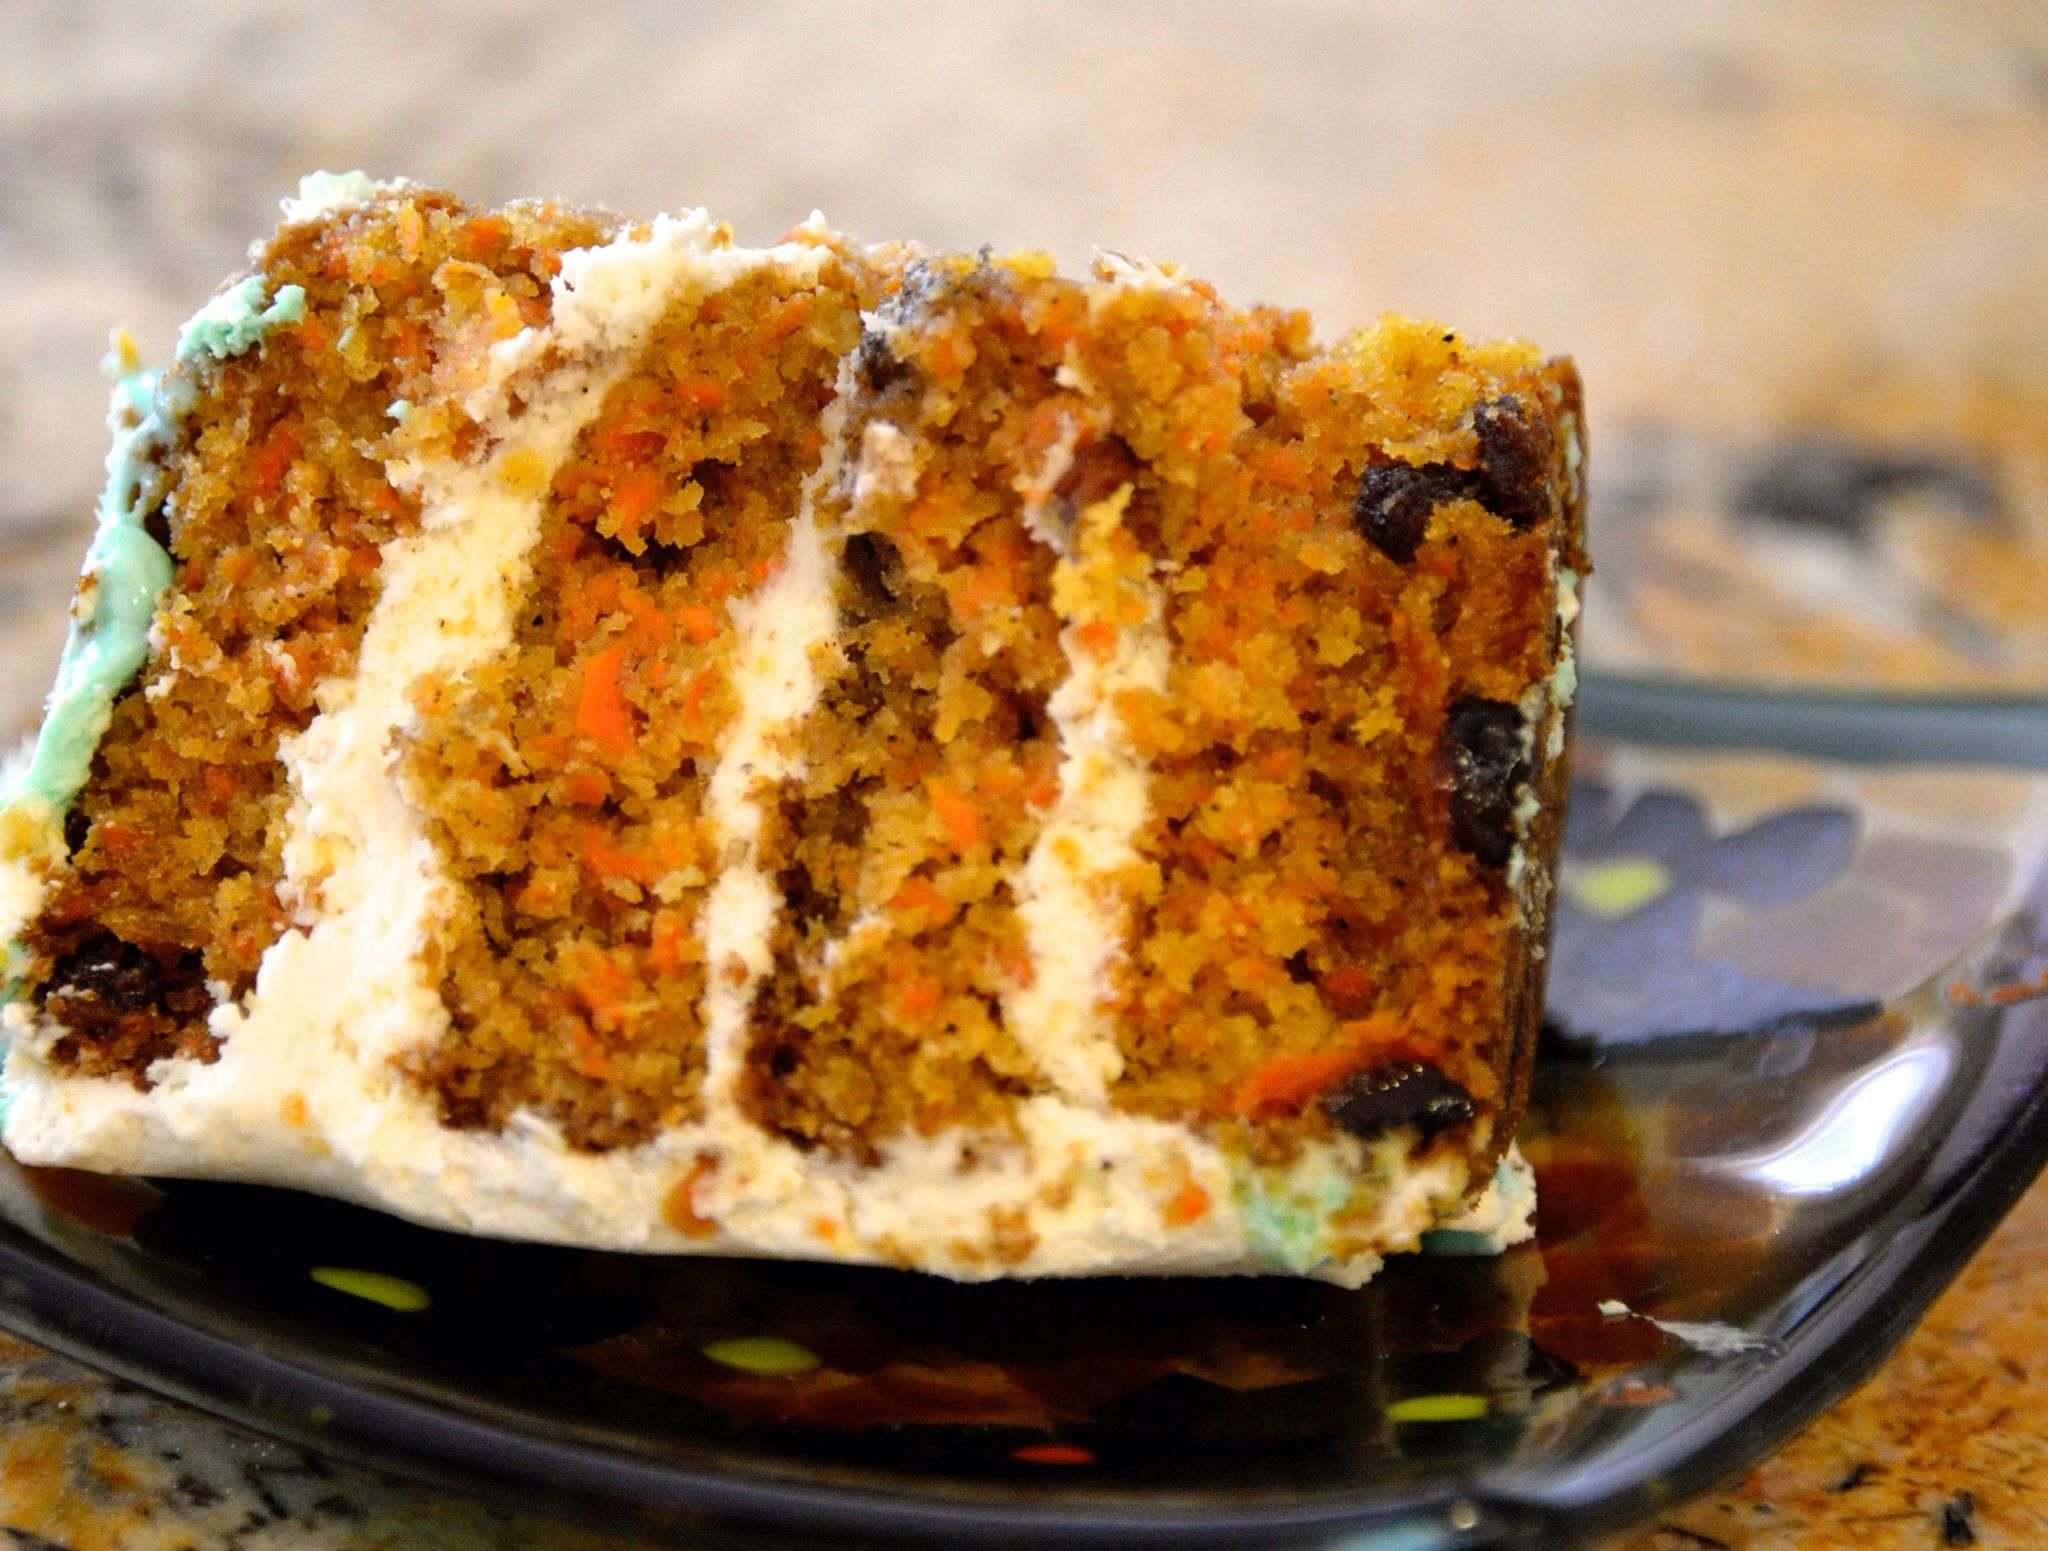 How to Make the Best Gluten Free Carrot Cake You'll Ever